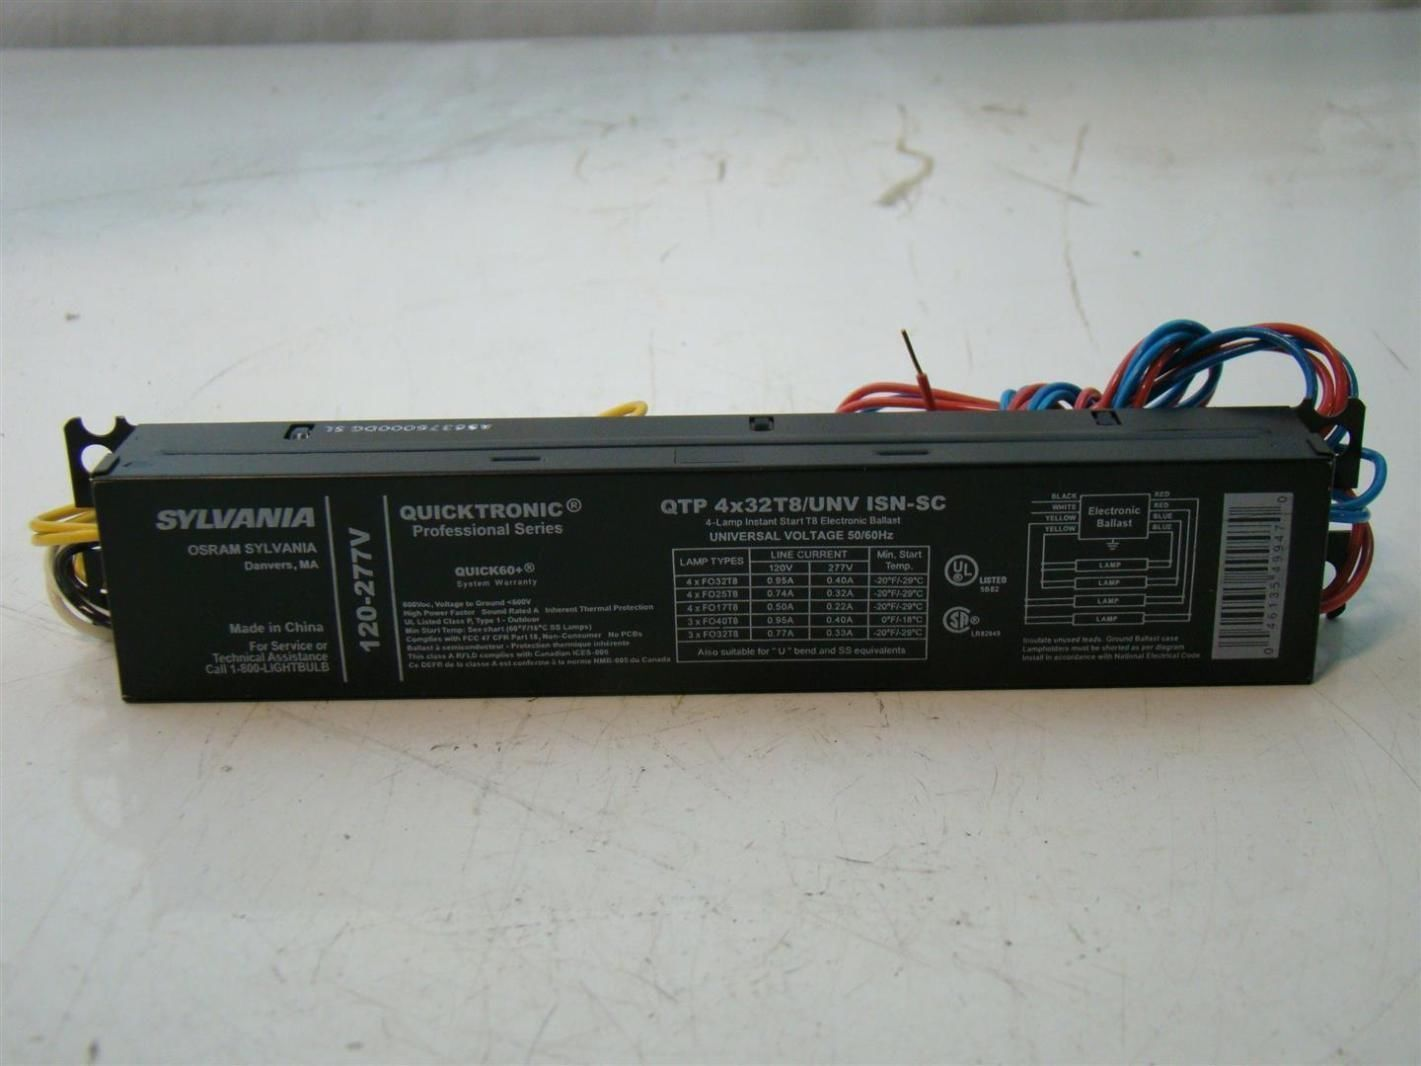 programmed start ballast wiring diagram with 120 277v Ballast Wiring Diagram on Fluorescent Emergency Ballast Wiring Diagram moreover B295srunvhp as well 202885921 in addition 1997 Gas Club Car Wiring Diagram additionally Wiring Diagram 208v To Led Driver.